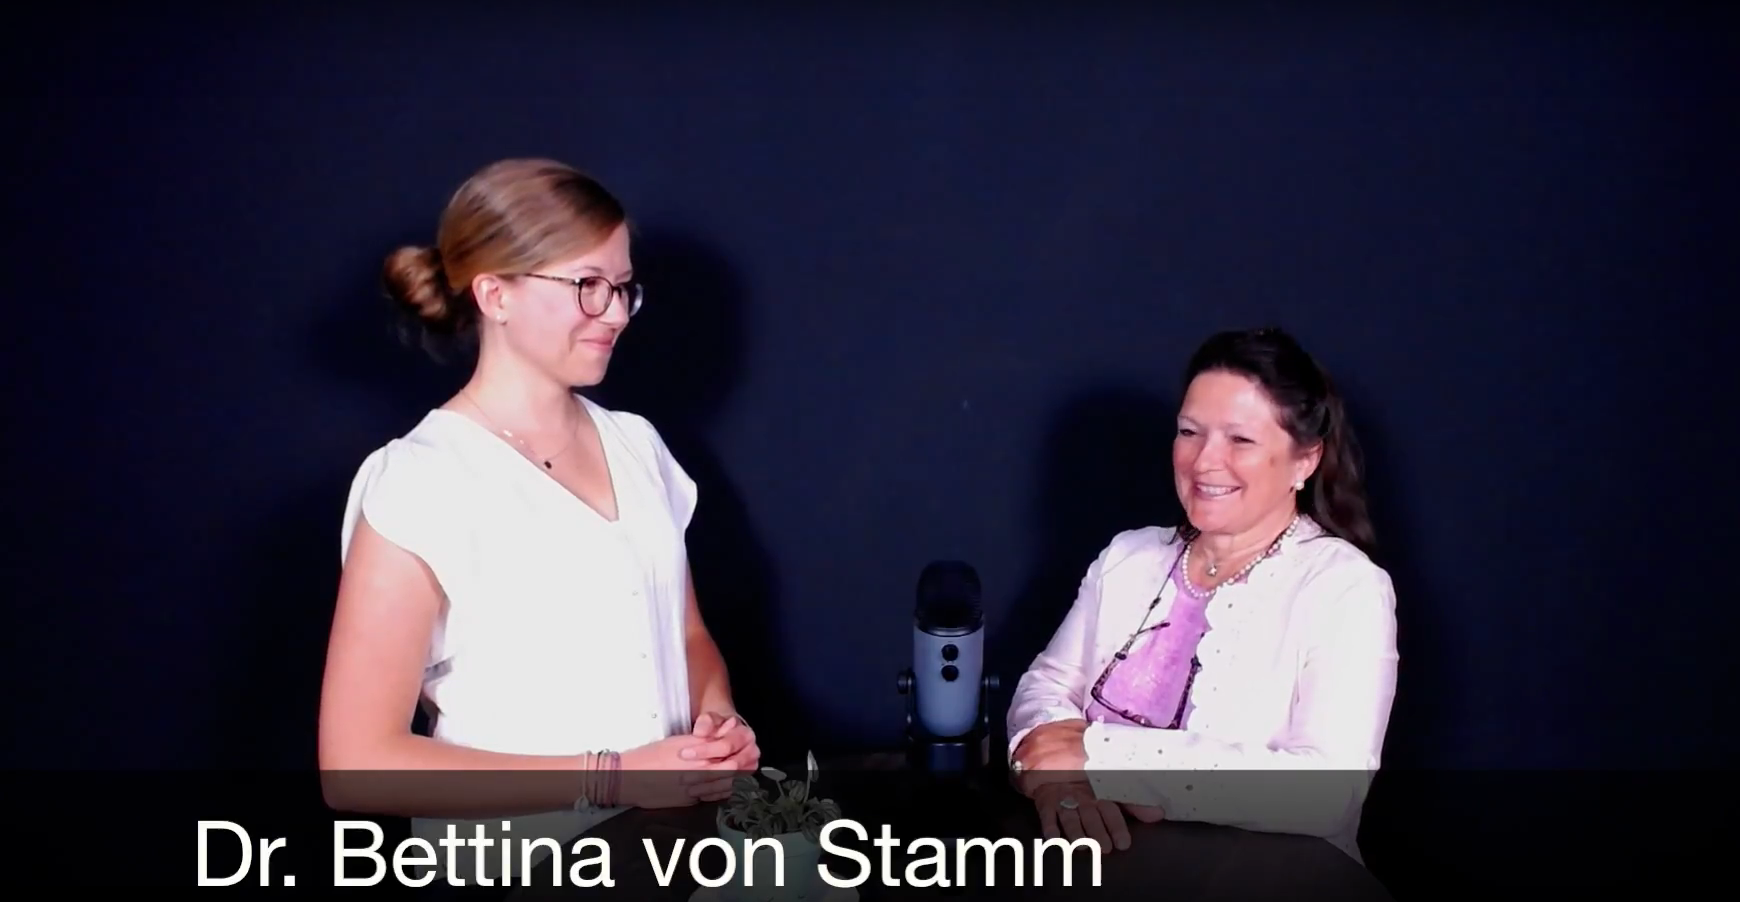 Innovation Konzept Dr. Bettina von Stamm the changing concepts of innovation